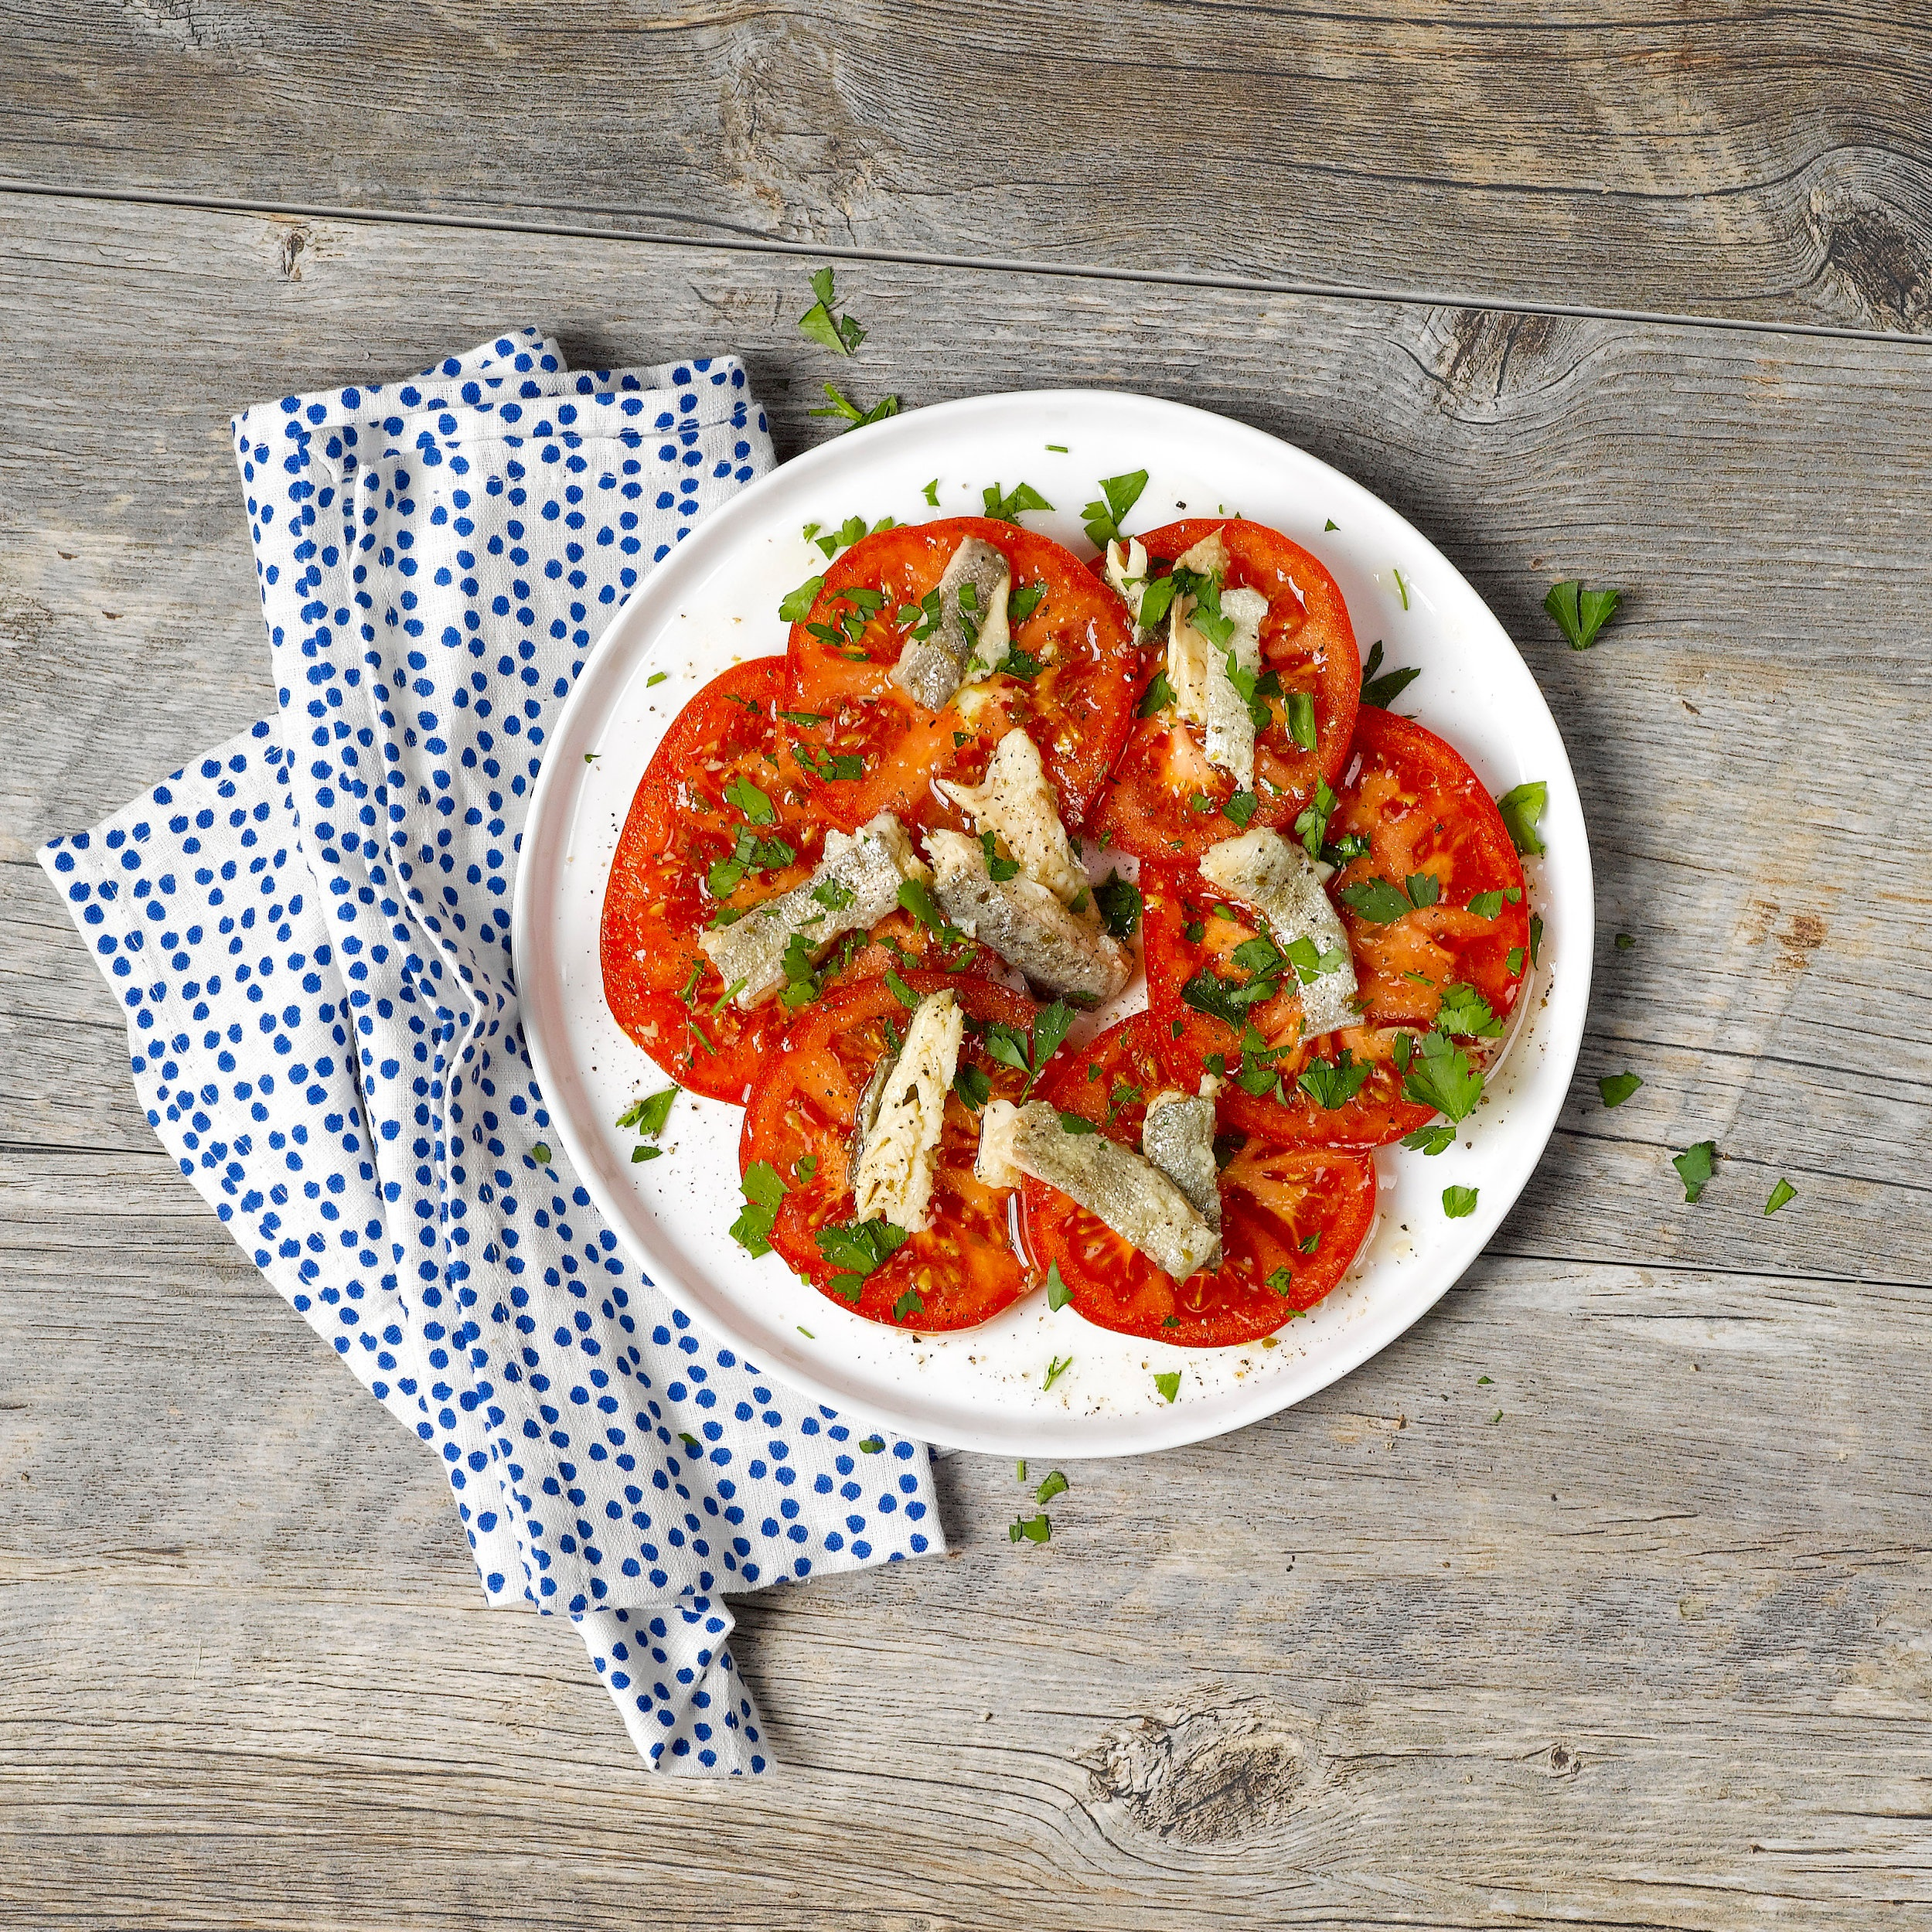 Tomatoes & Herbs Topped with Smoked Trout -